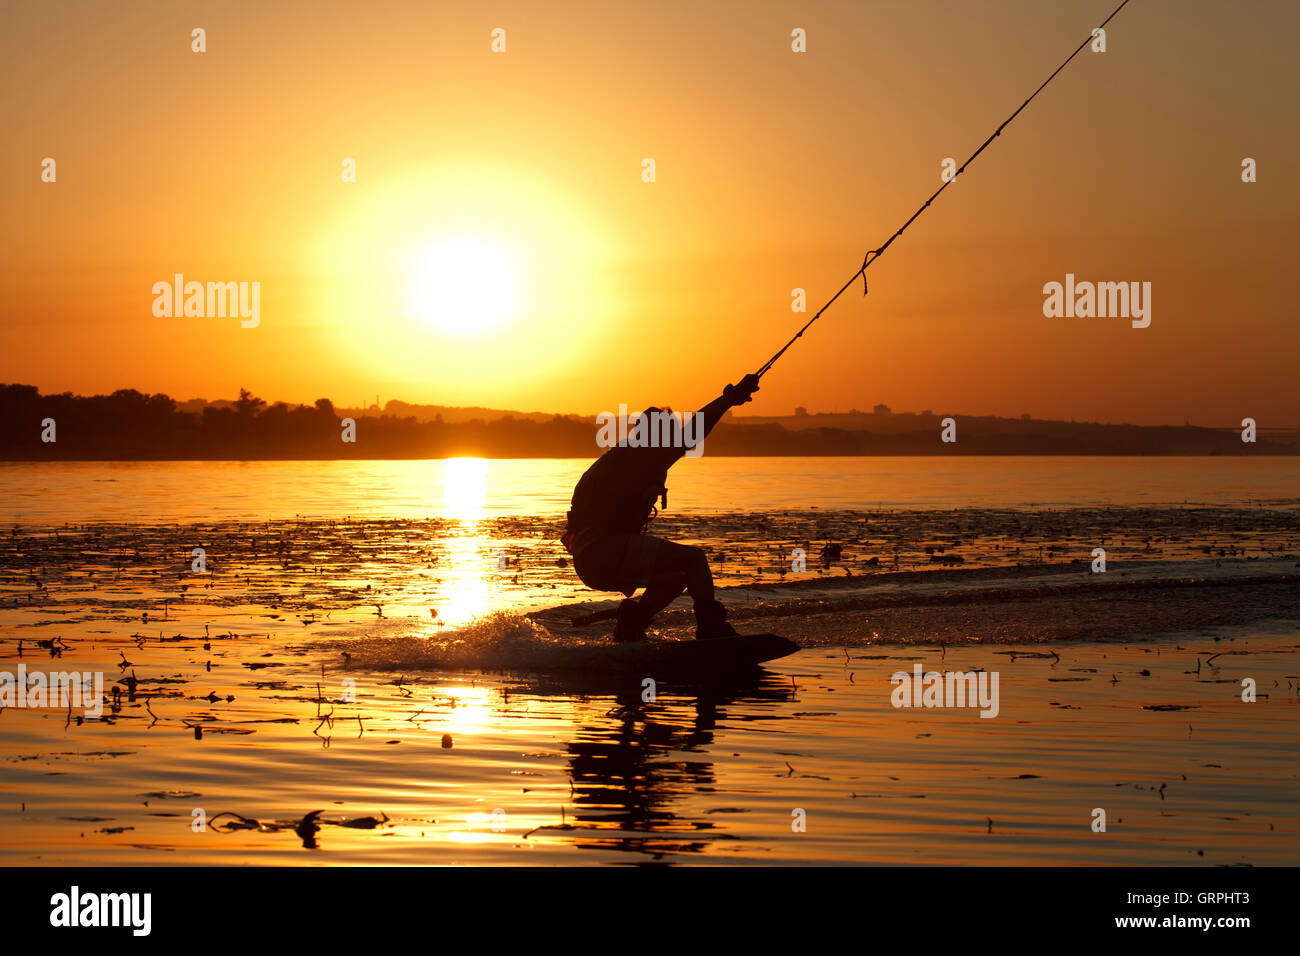 a wakeboard, athlete silhouette on sunset background - Stock Image